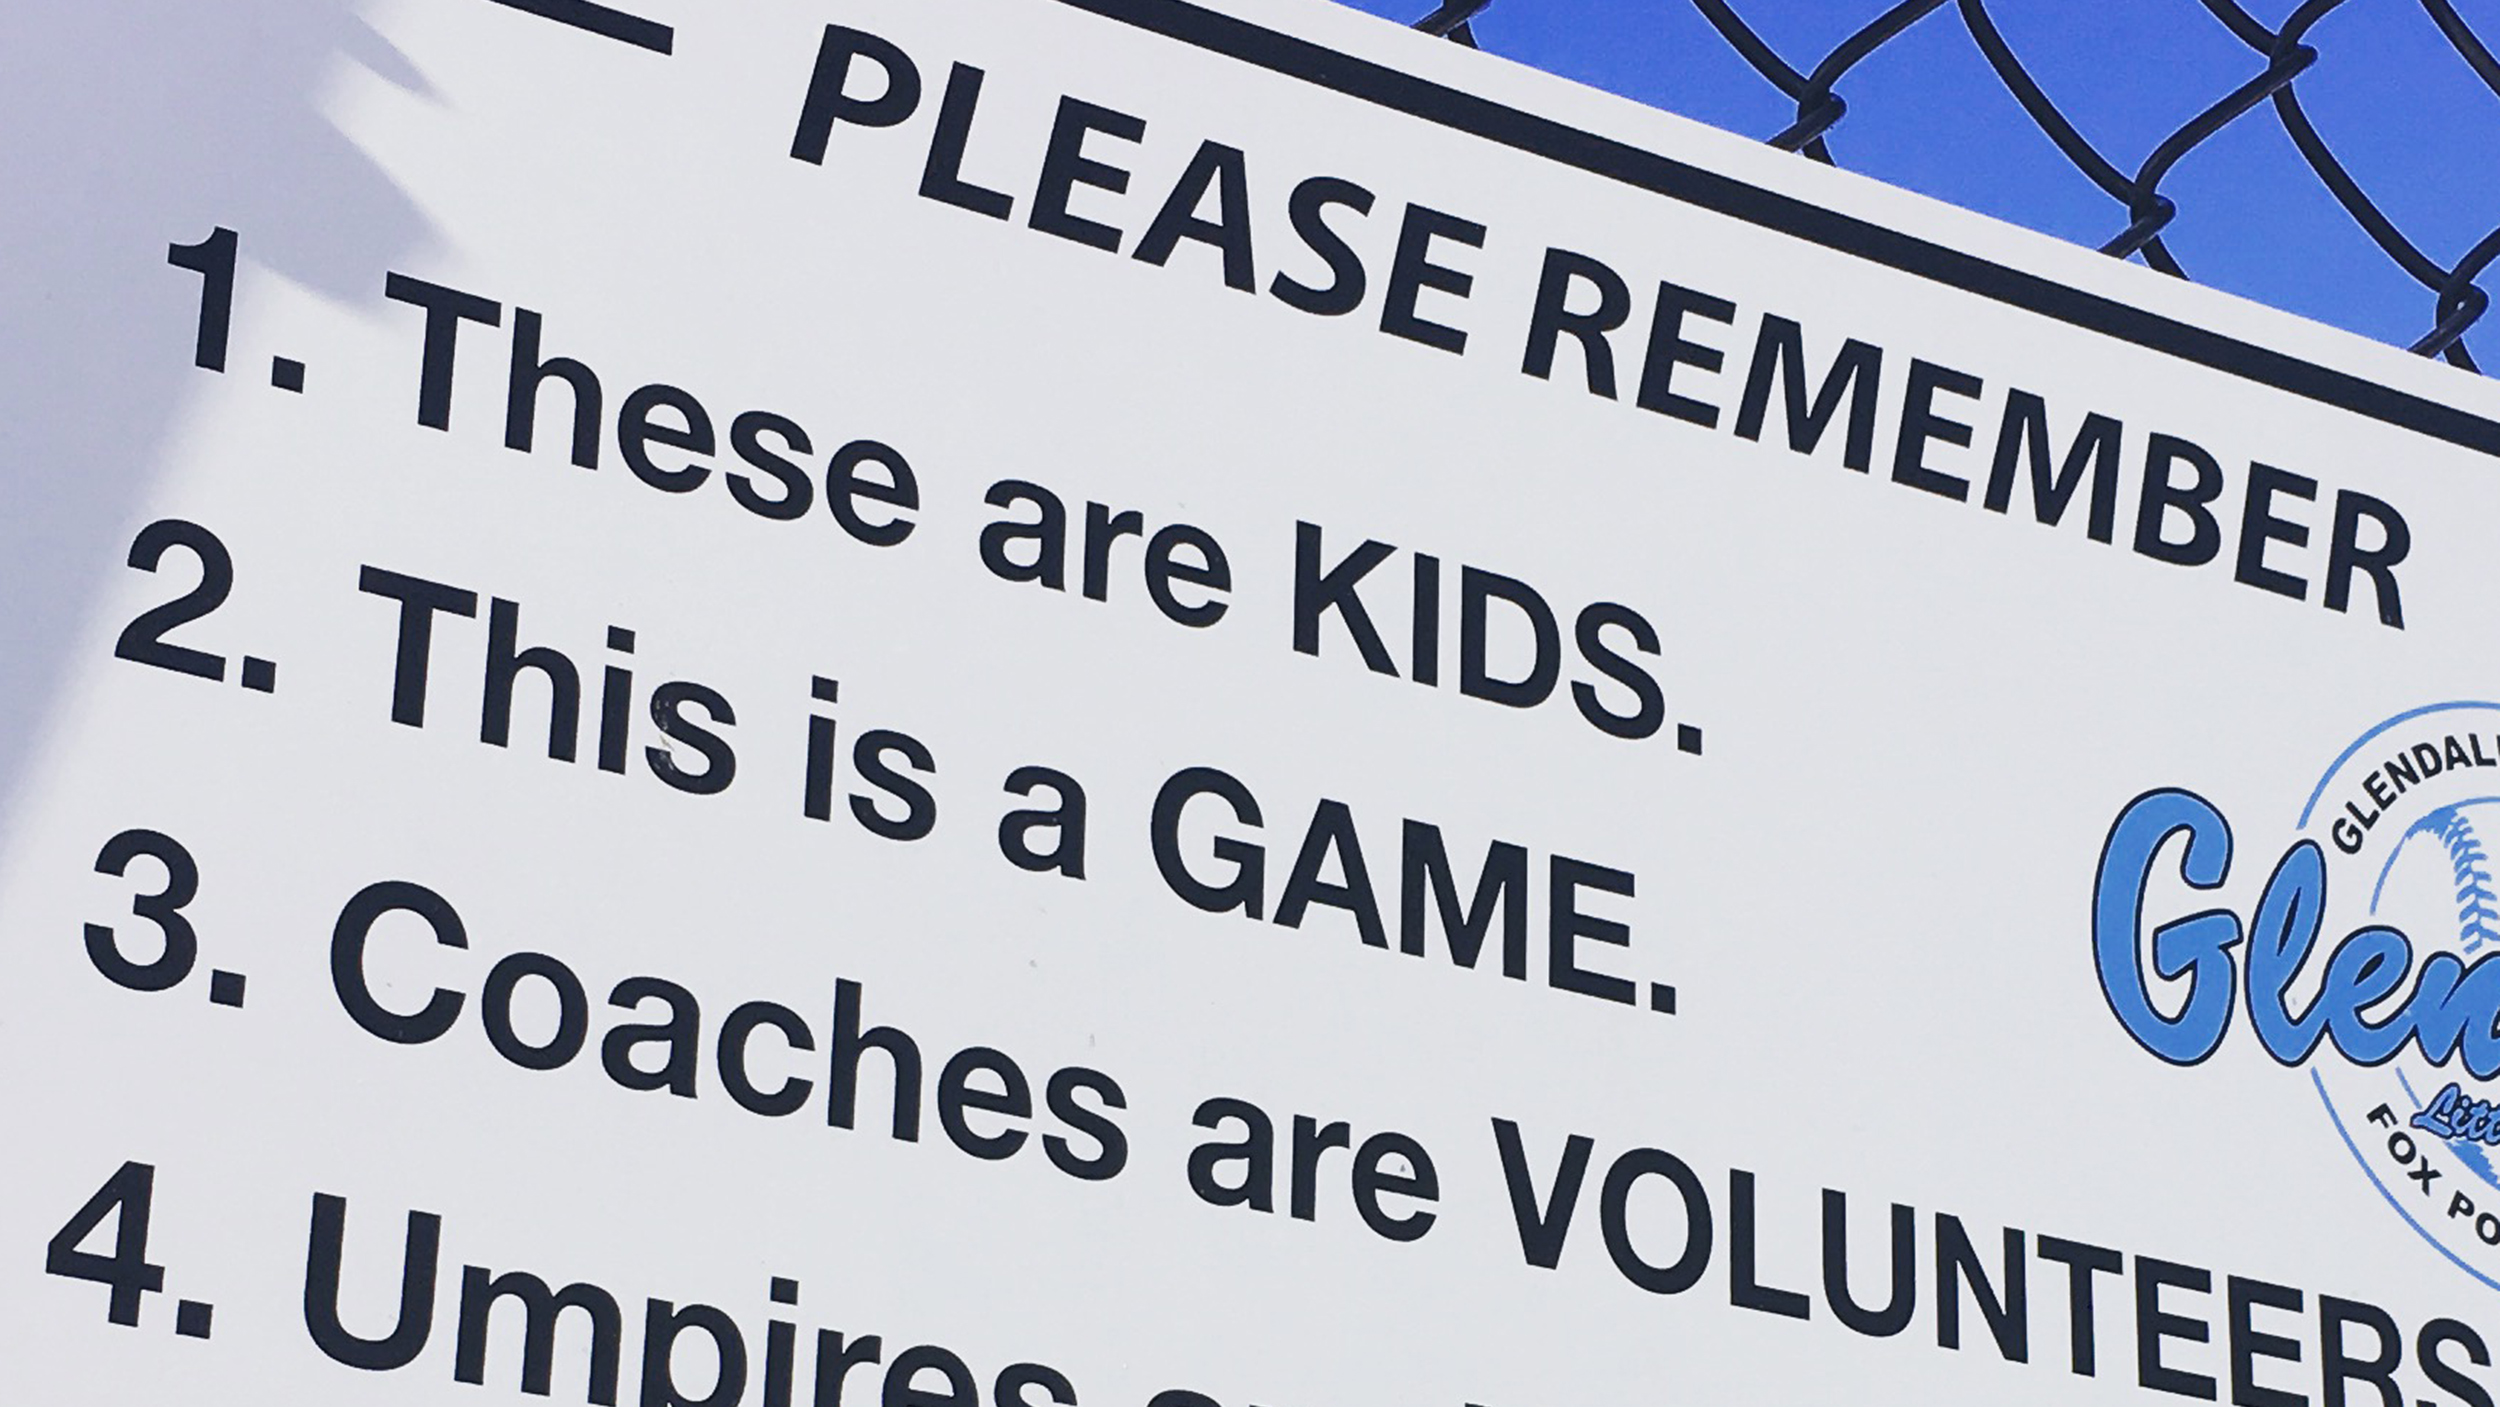 Little League S Sign To Overbearing Parents They Re Kids